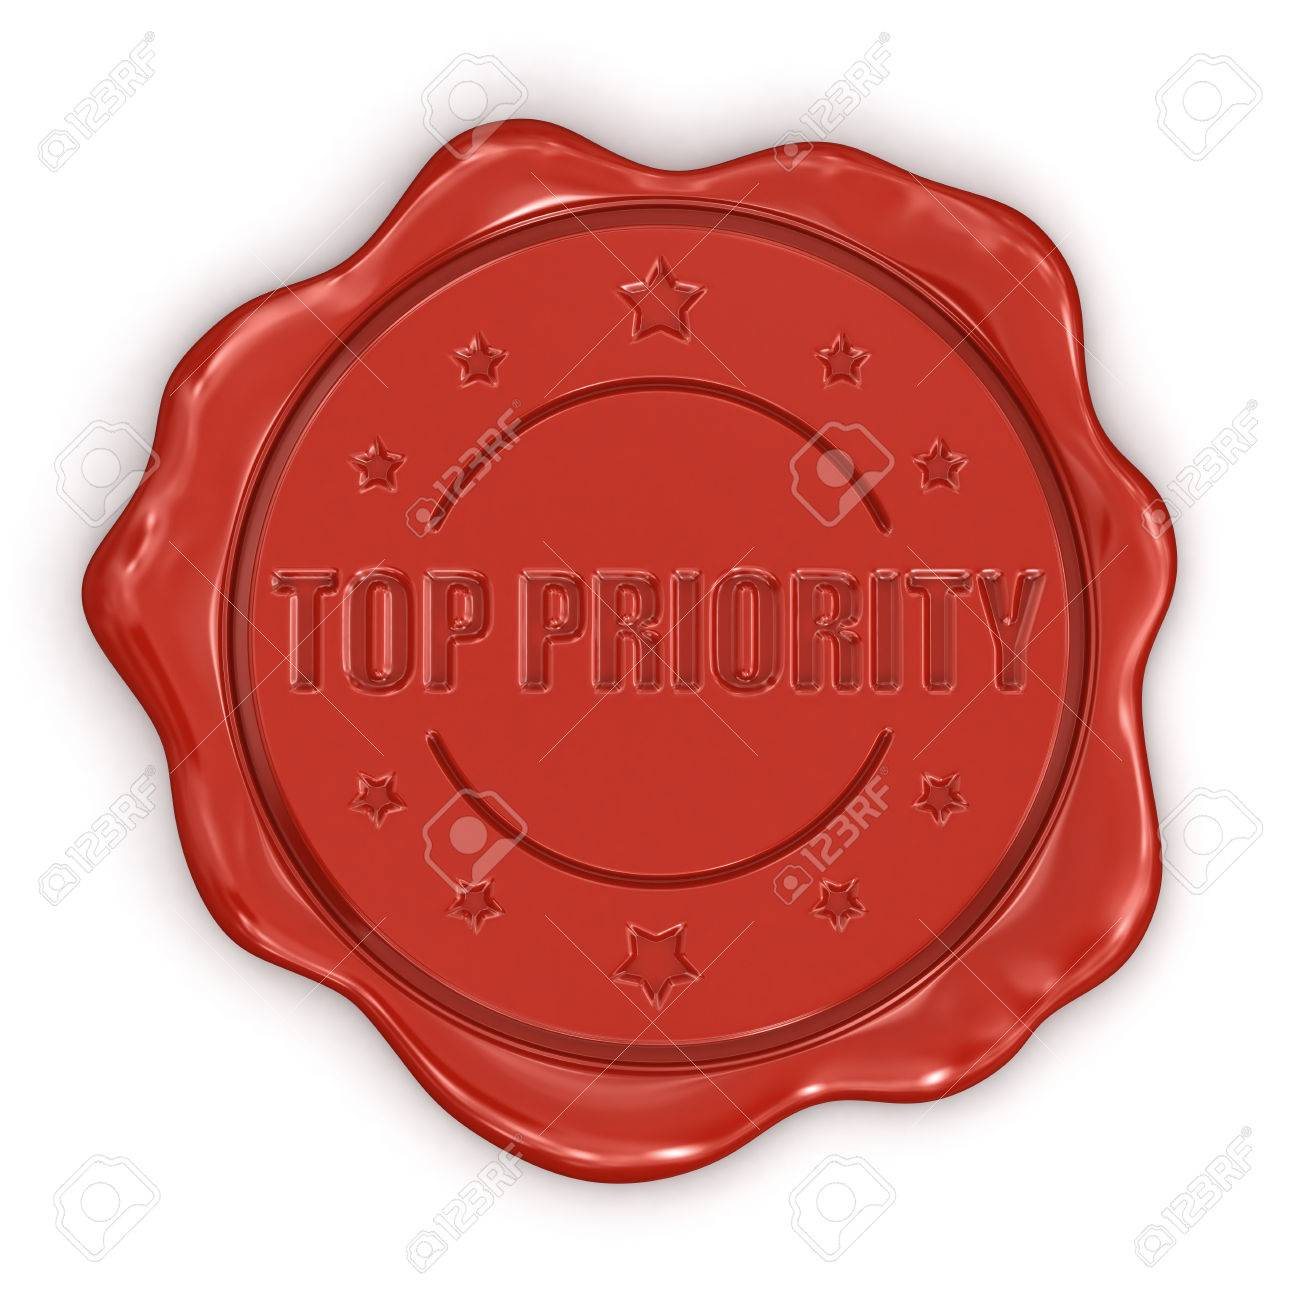 Wax Stamp Top Priority  clipping path included Stock Photo - 24356512